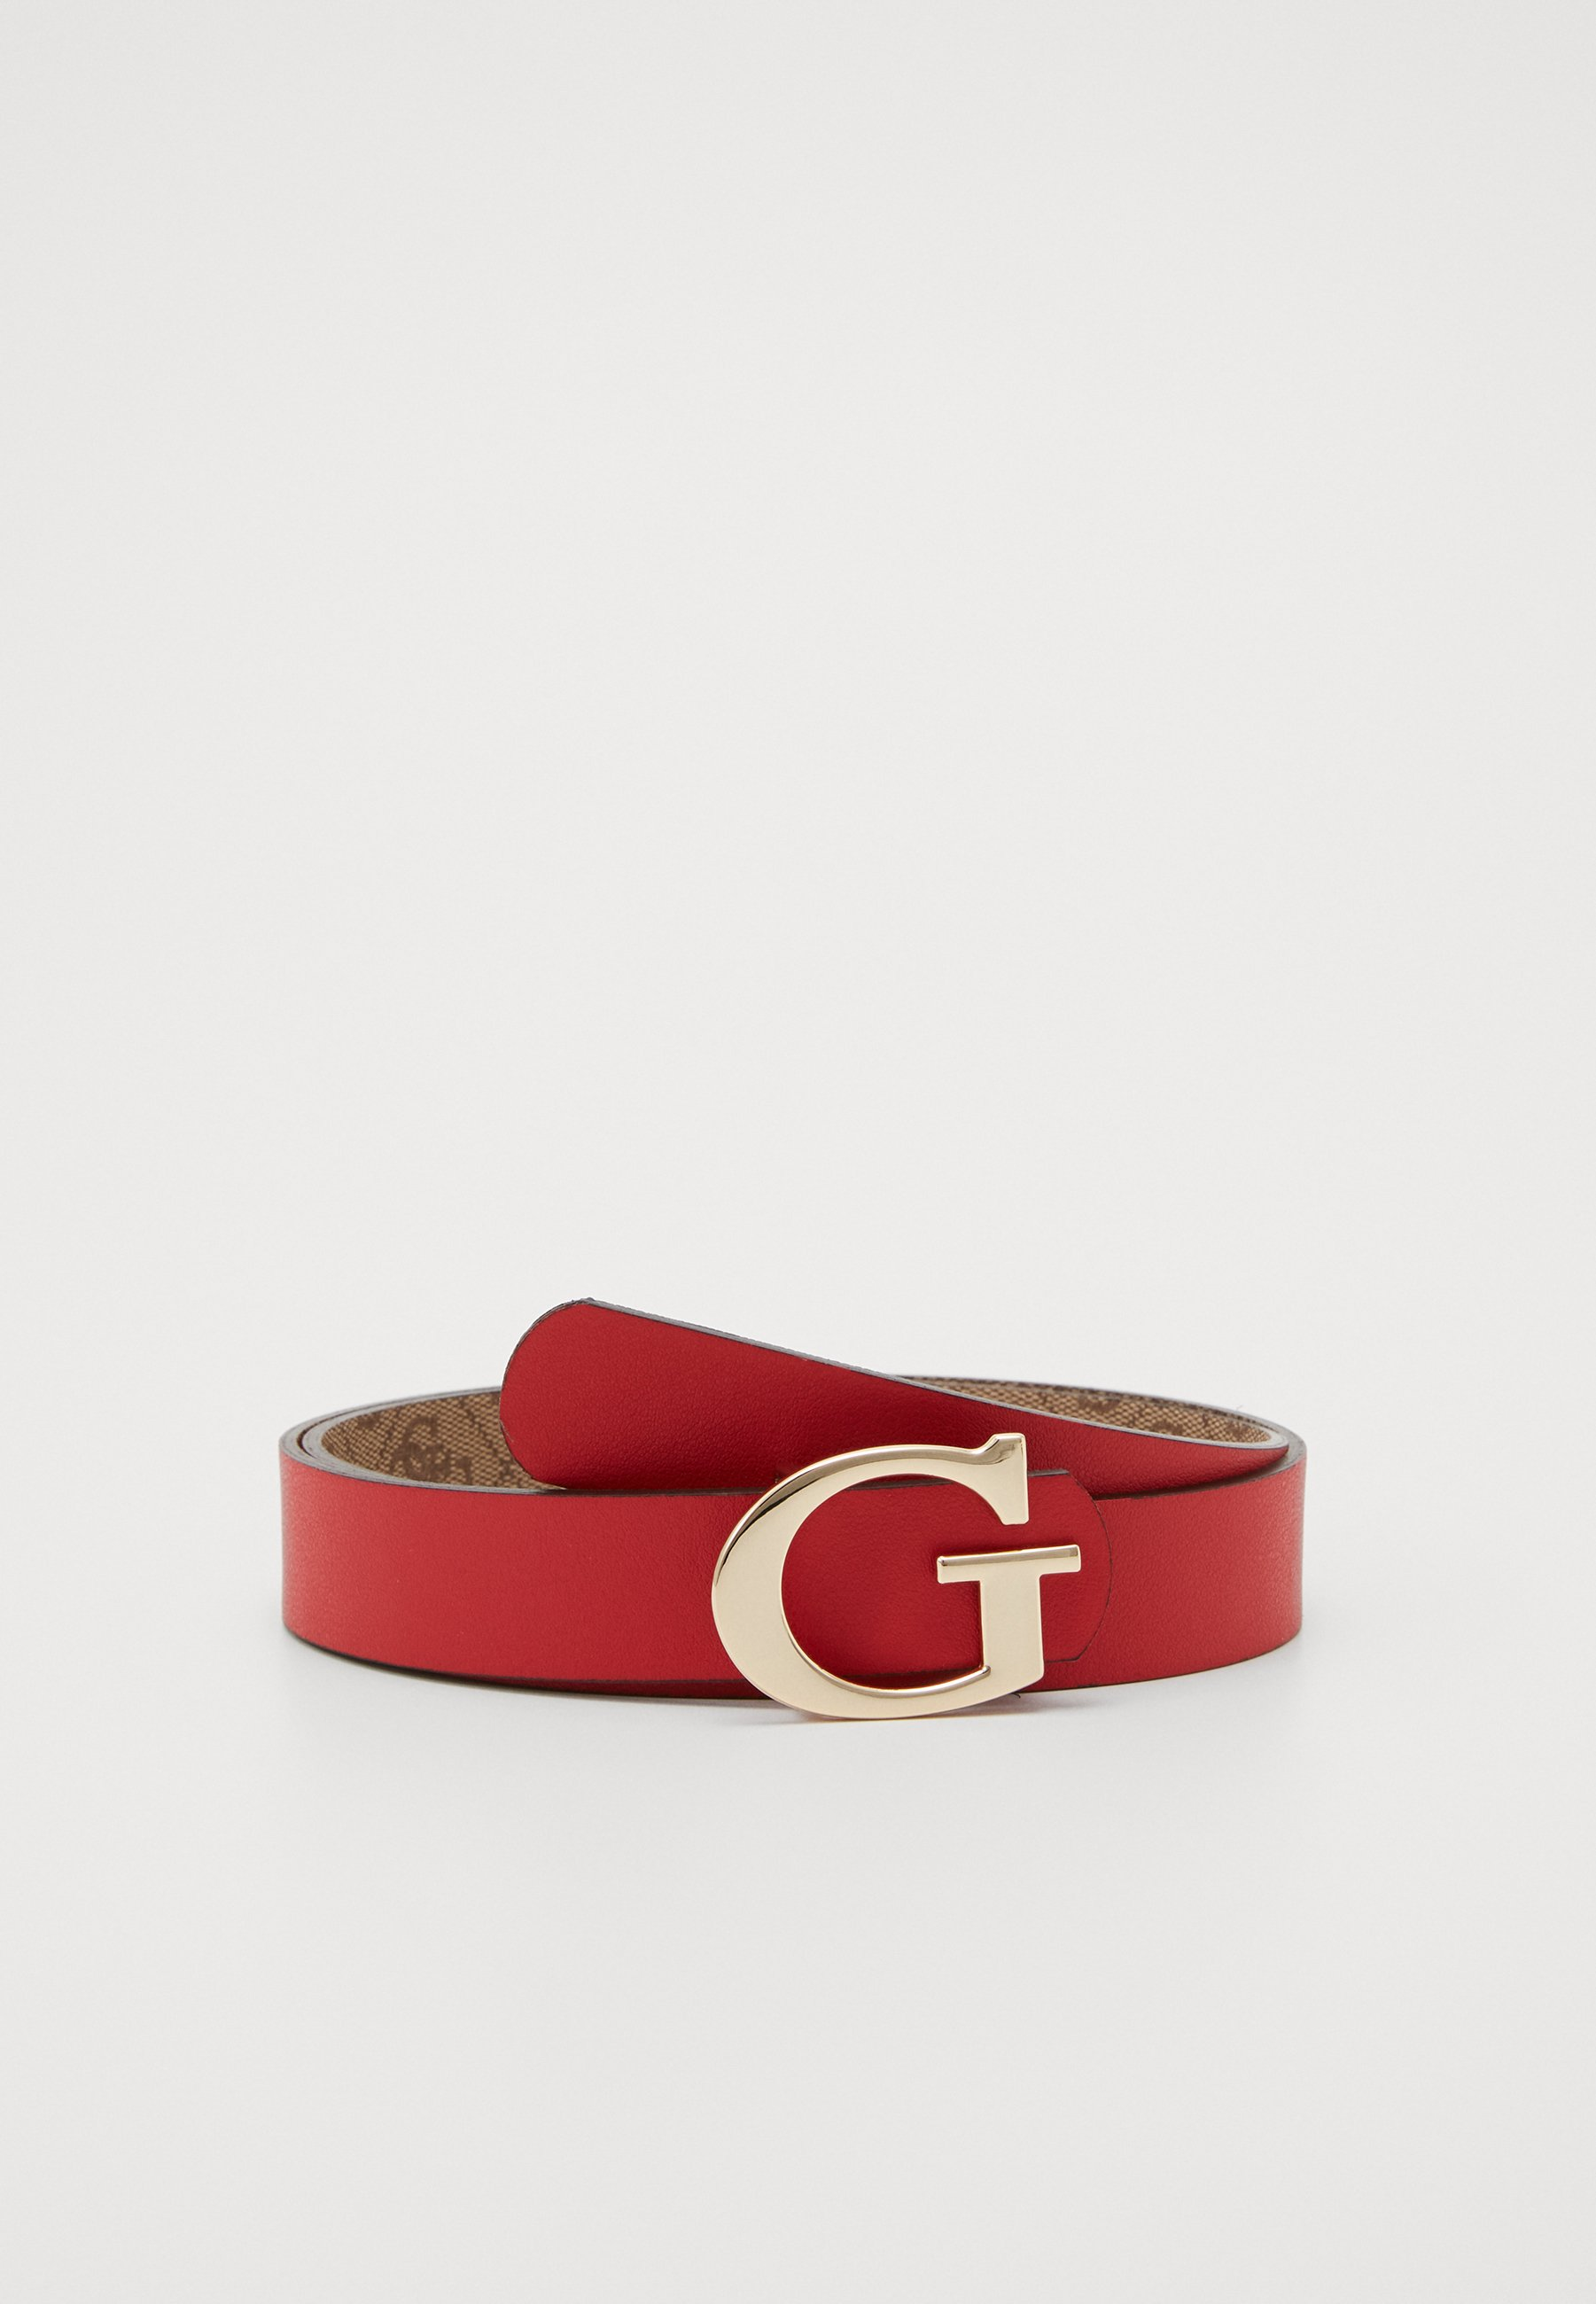 Guess ALBY NOT ADJUST PANT BELT - Belte - brown/cherry/brun o6wy5S7DWd5cQIX